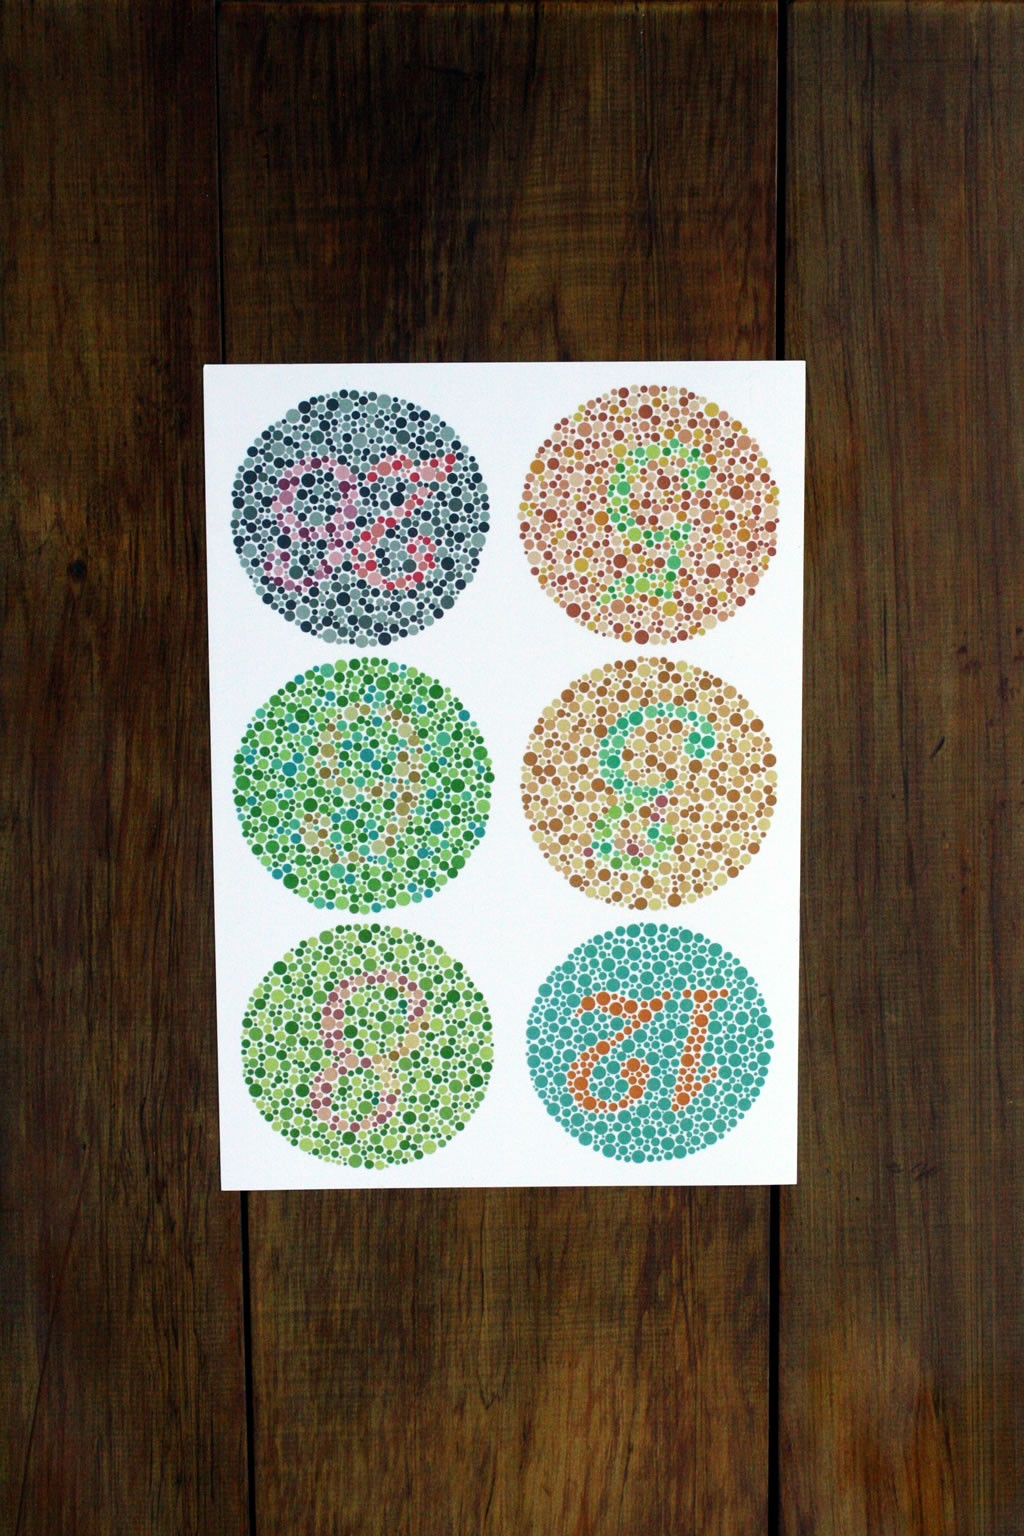 Colour Vision Color Blindness Test Ishihara Eye Charts